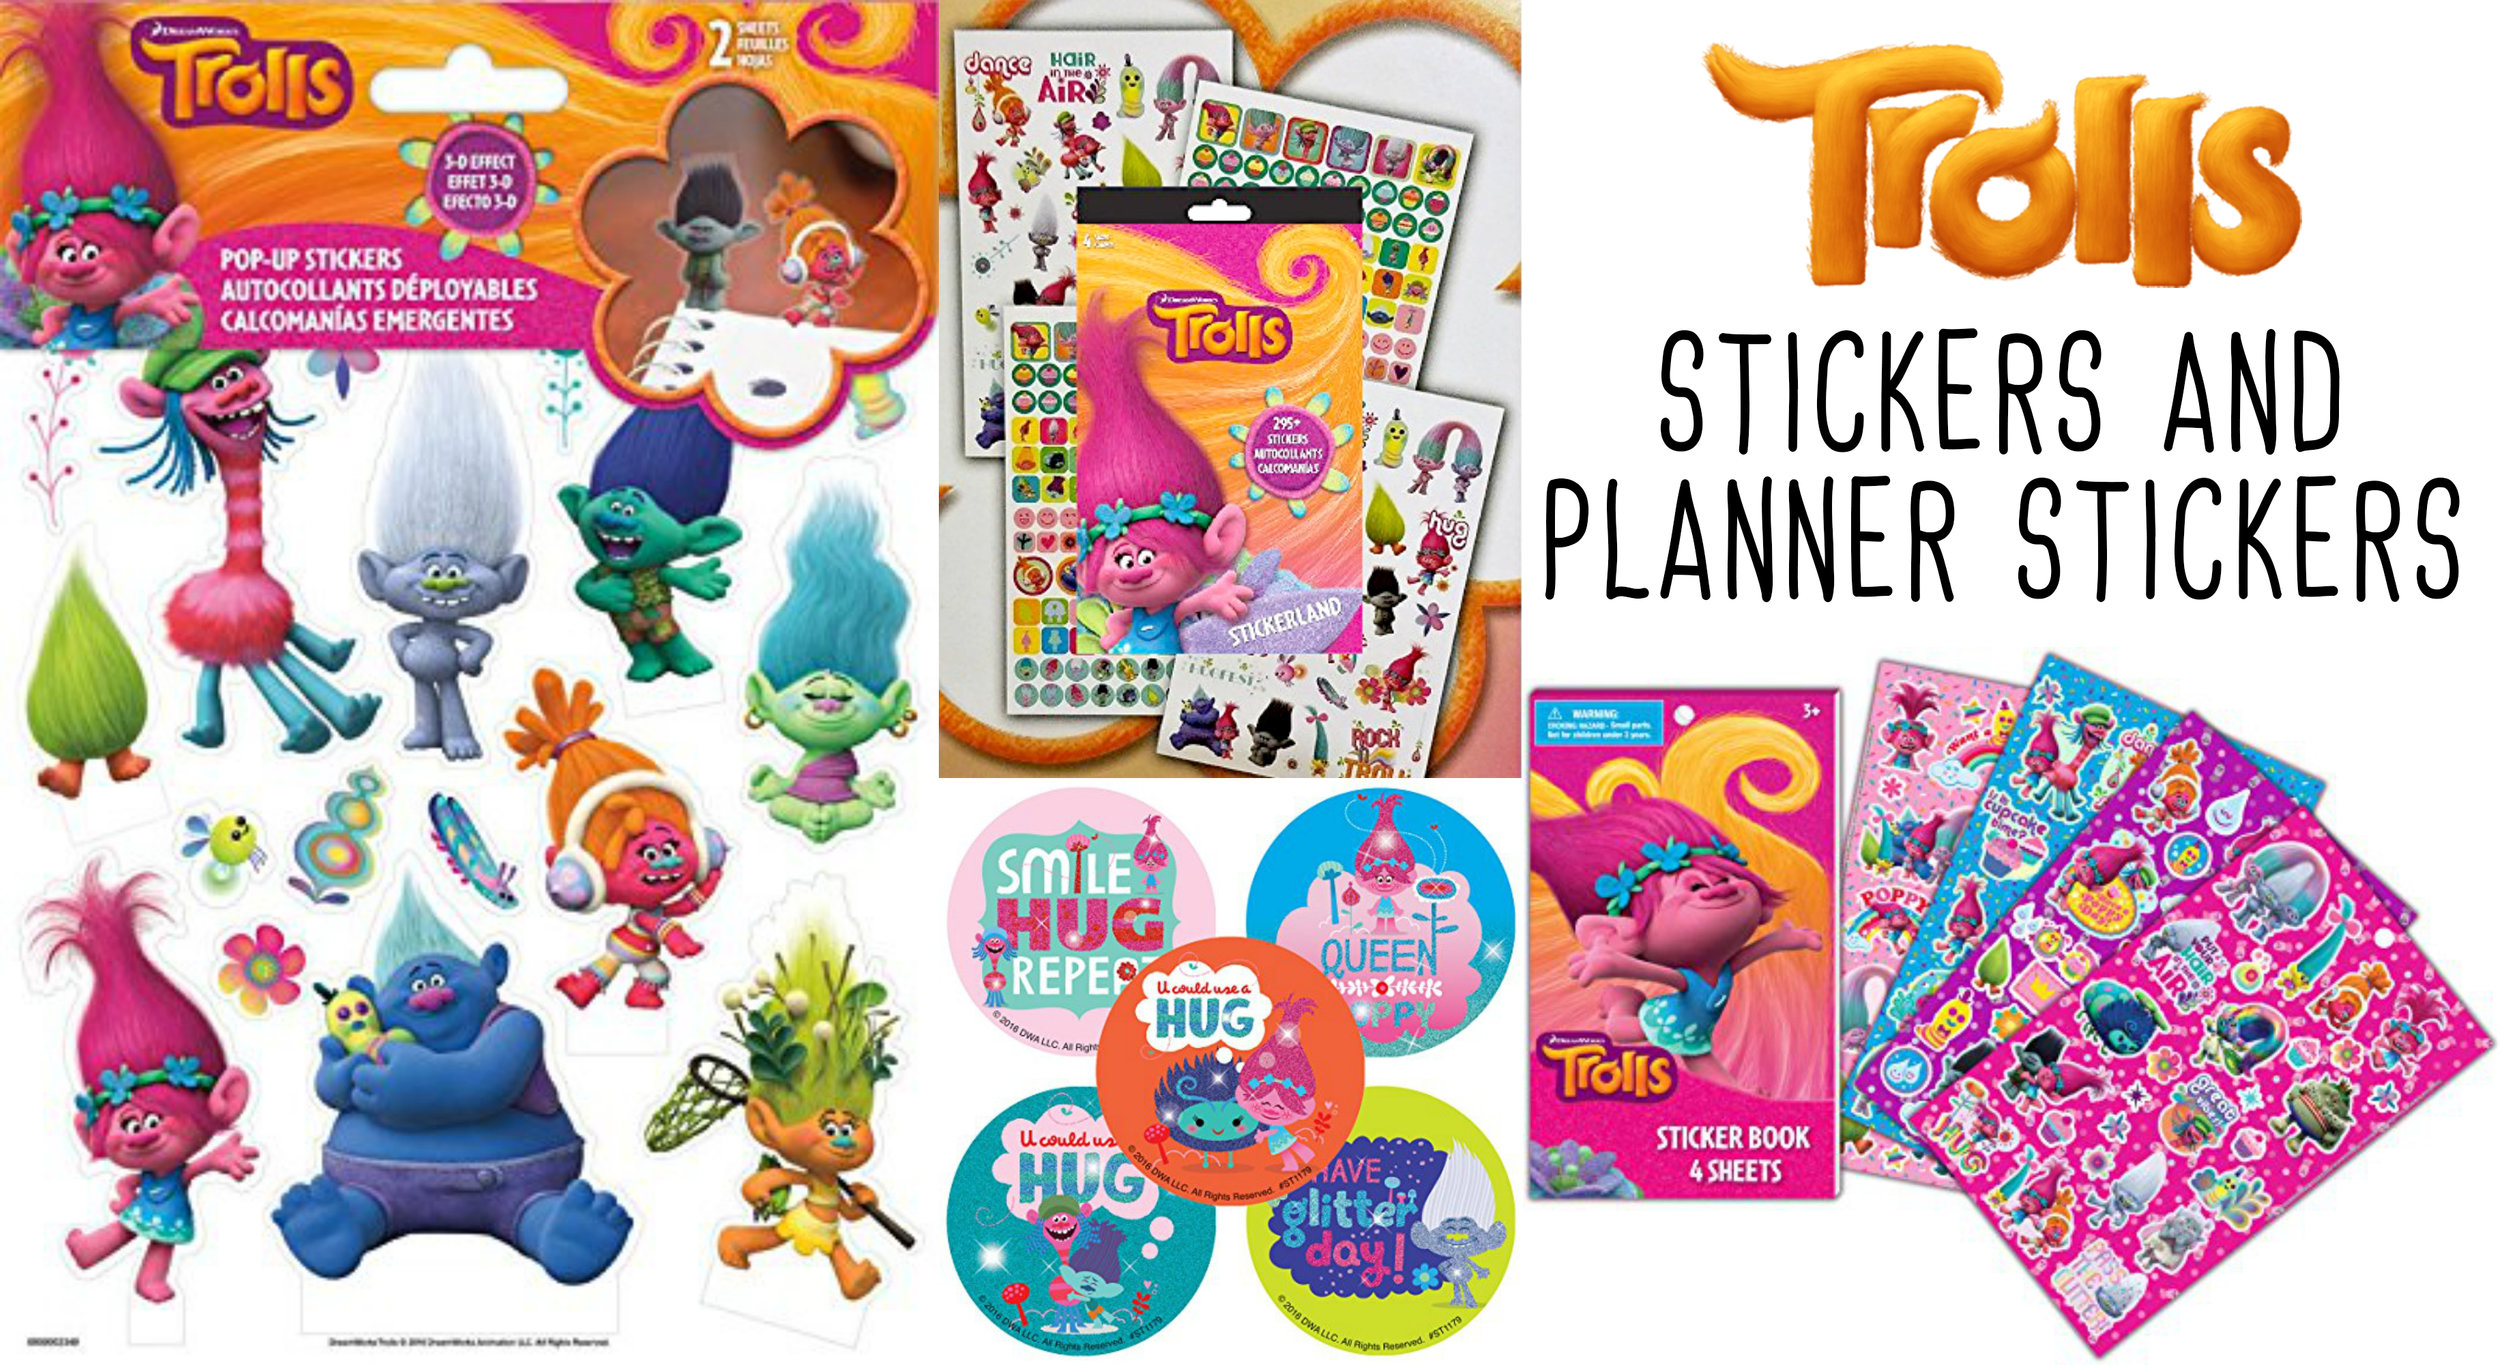 Trolls Stickers And Planner Stickers